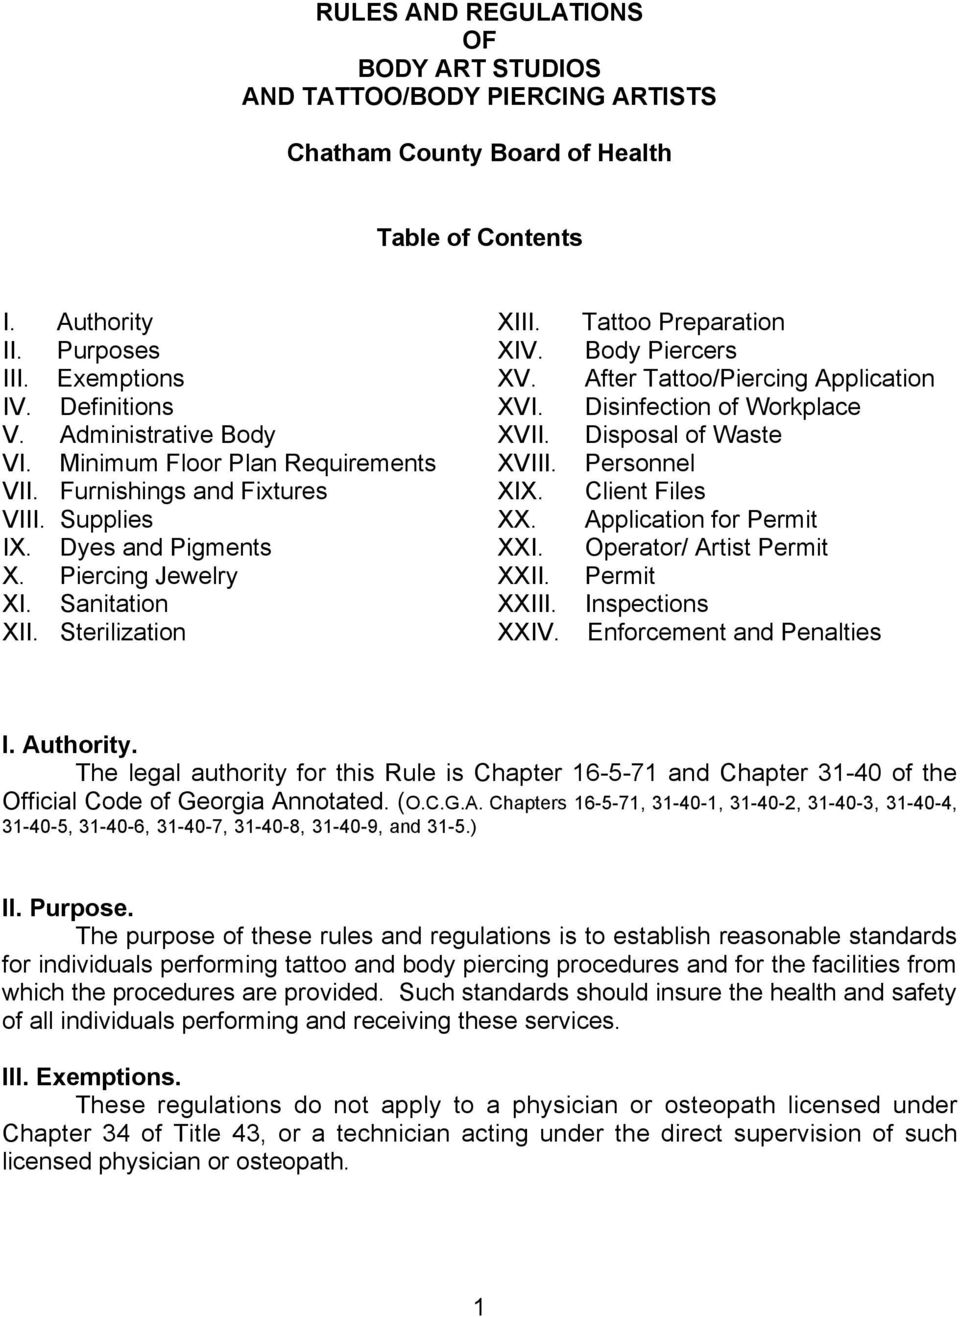 Rules And Regulations Of Body Art Studios And Tattoo Body Piercing Artists Chatham County Board Of Health Table Of Contents Pdf Free Download